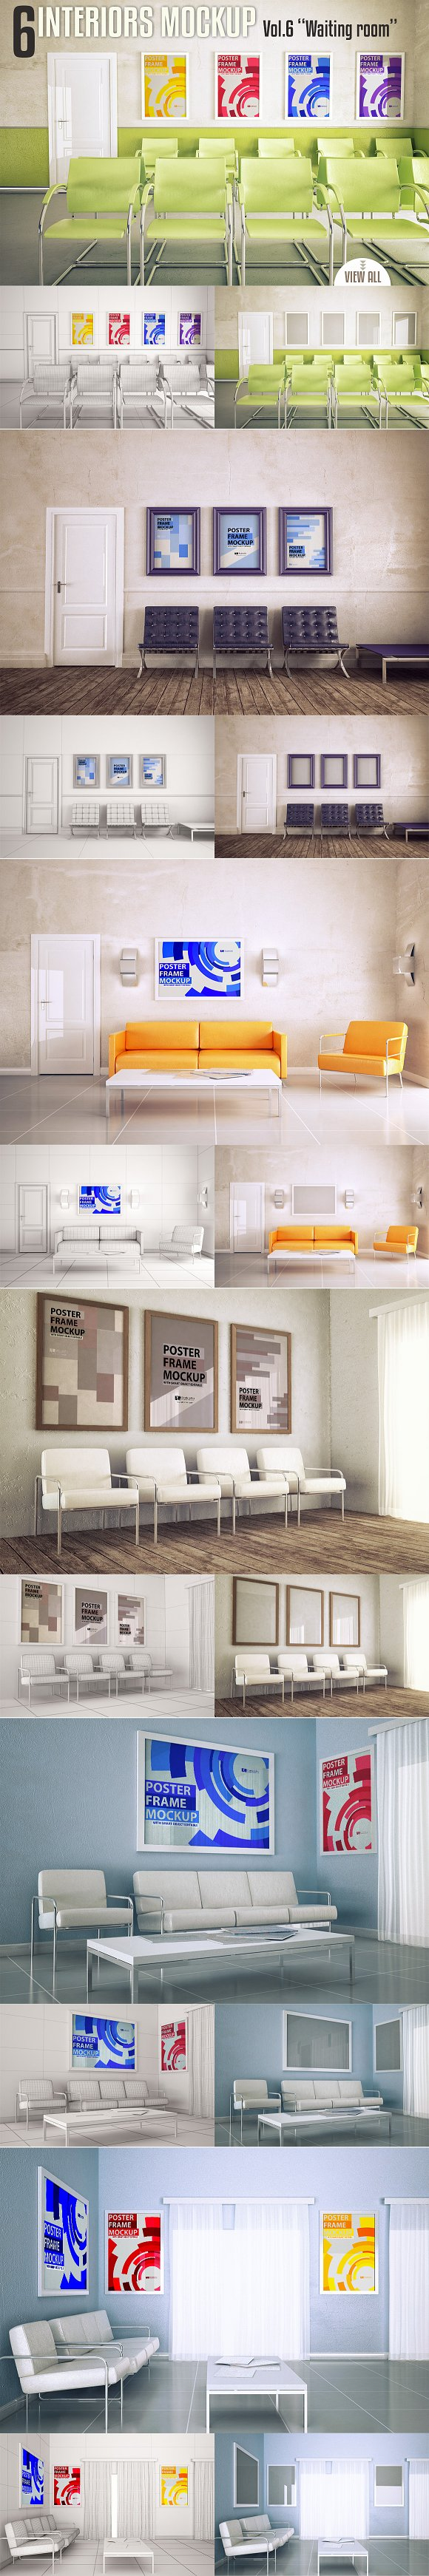 Download Interior Mock-up Vol. 6